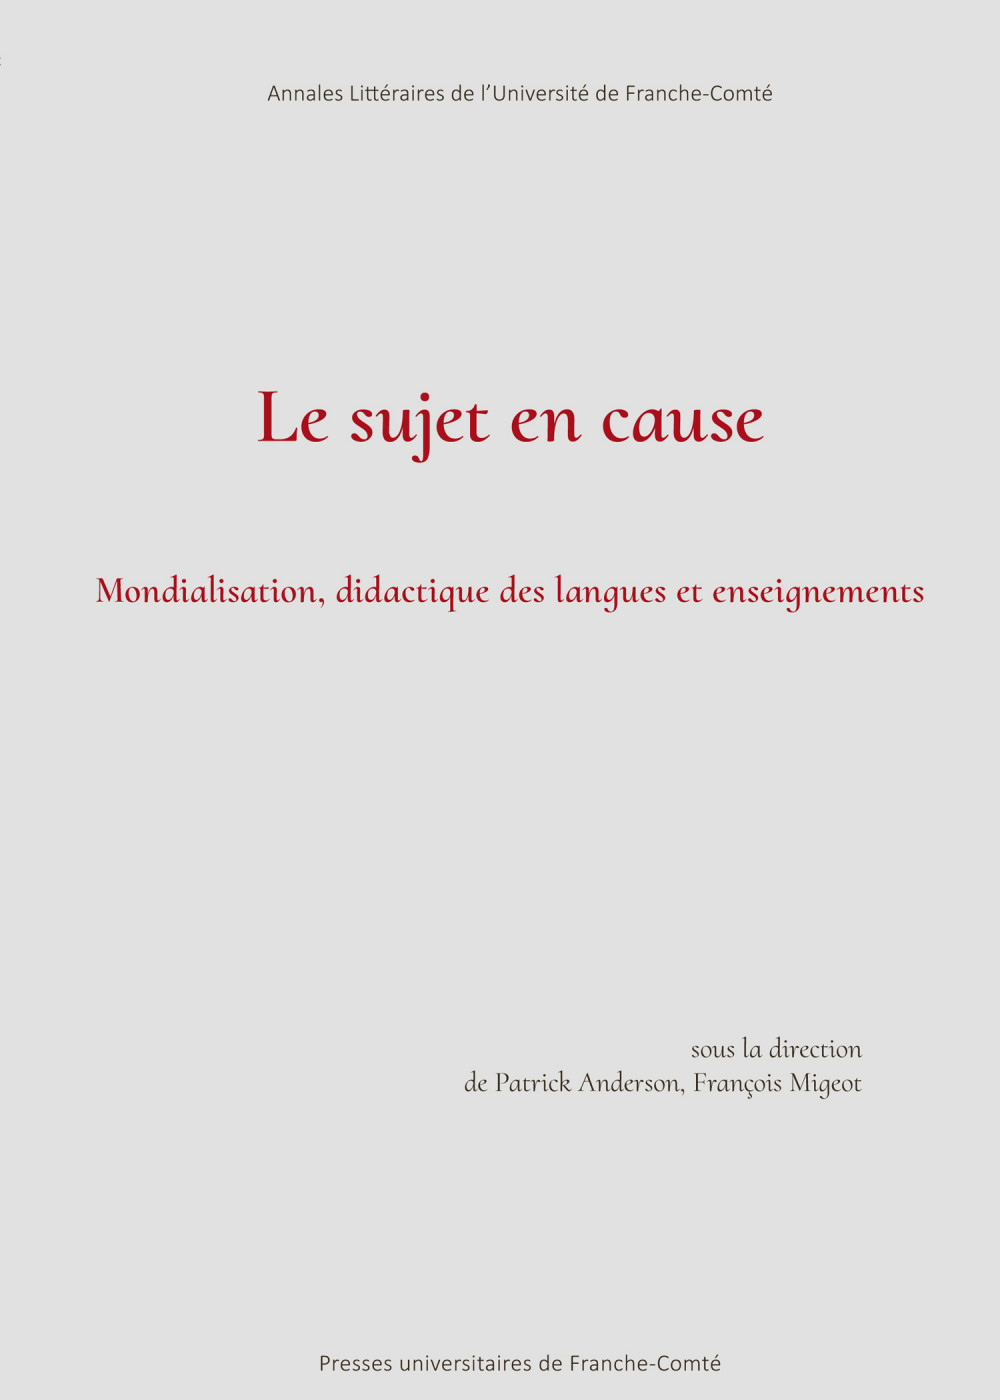 Couverture_Anderson-Migeot_Sujet-cause